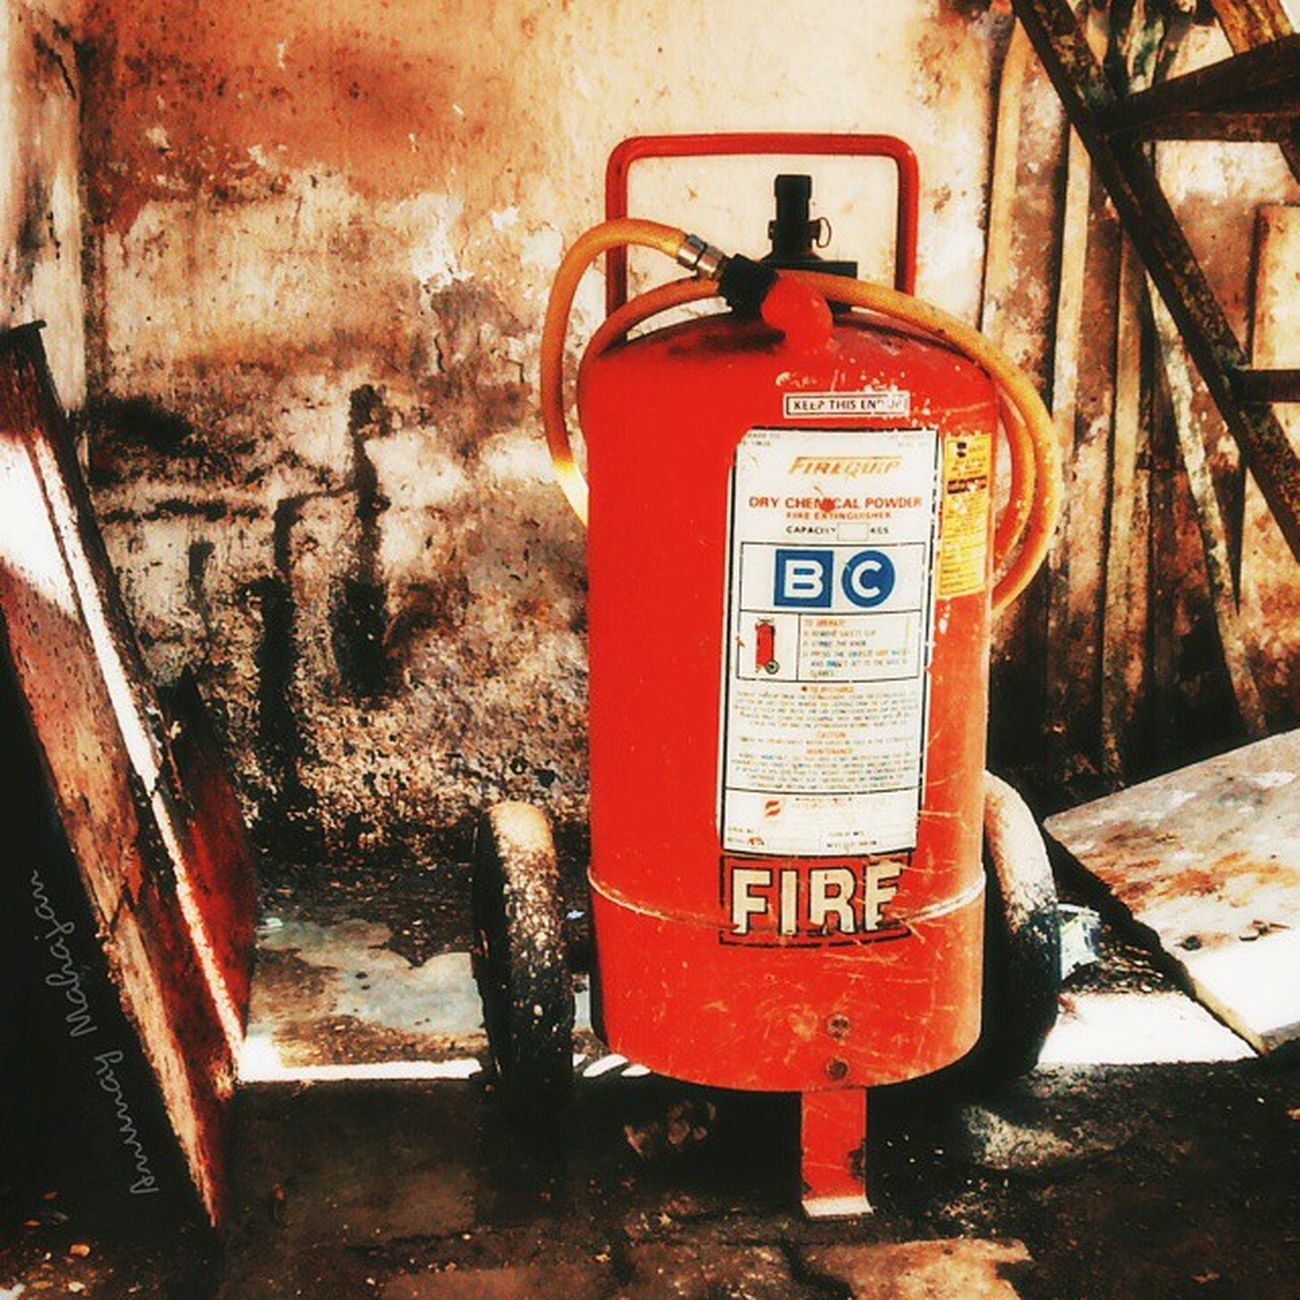 Extinguish the FIRE around you! Retro Extinguisher Fire Safety gadget mobilephonephotography cellphonephotography motography MotoG MyMotoG MotoGPhotography vscoindia vscocam vsco fotoartegram Instagram instamood retroLook travel explore pixlr autodesk webstagram highSaturation instalike ig_captures ig_shots photography old summer